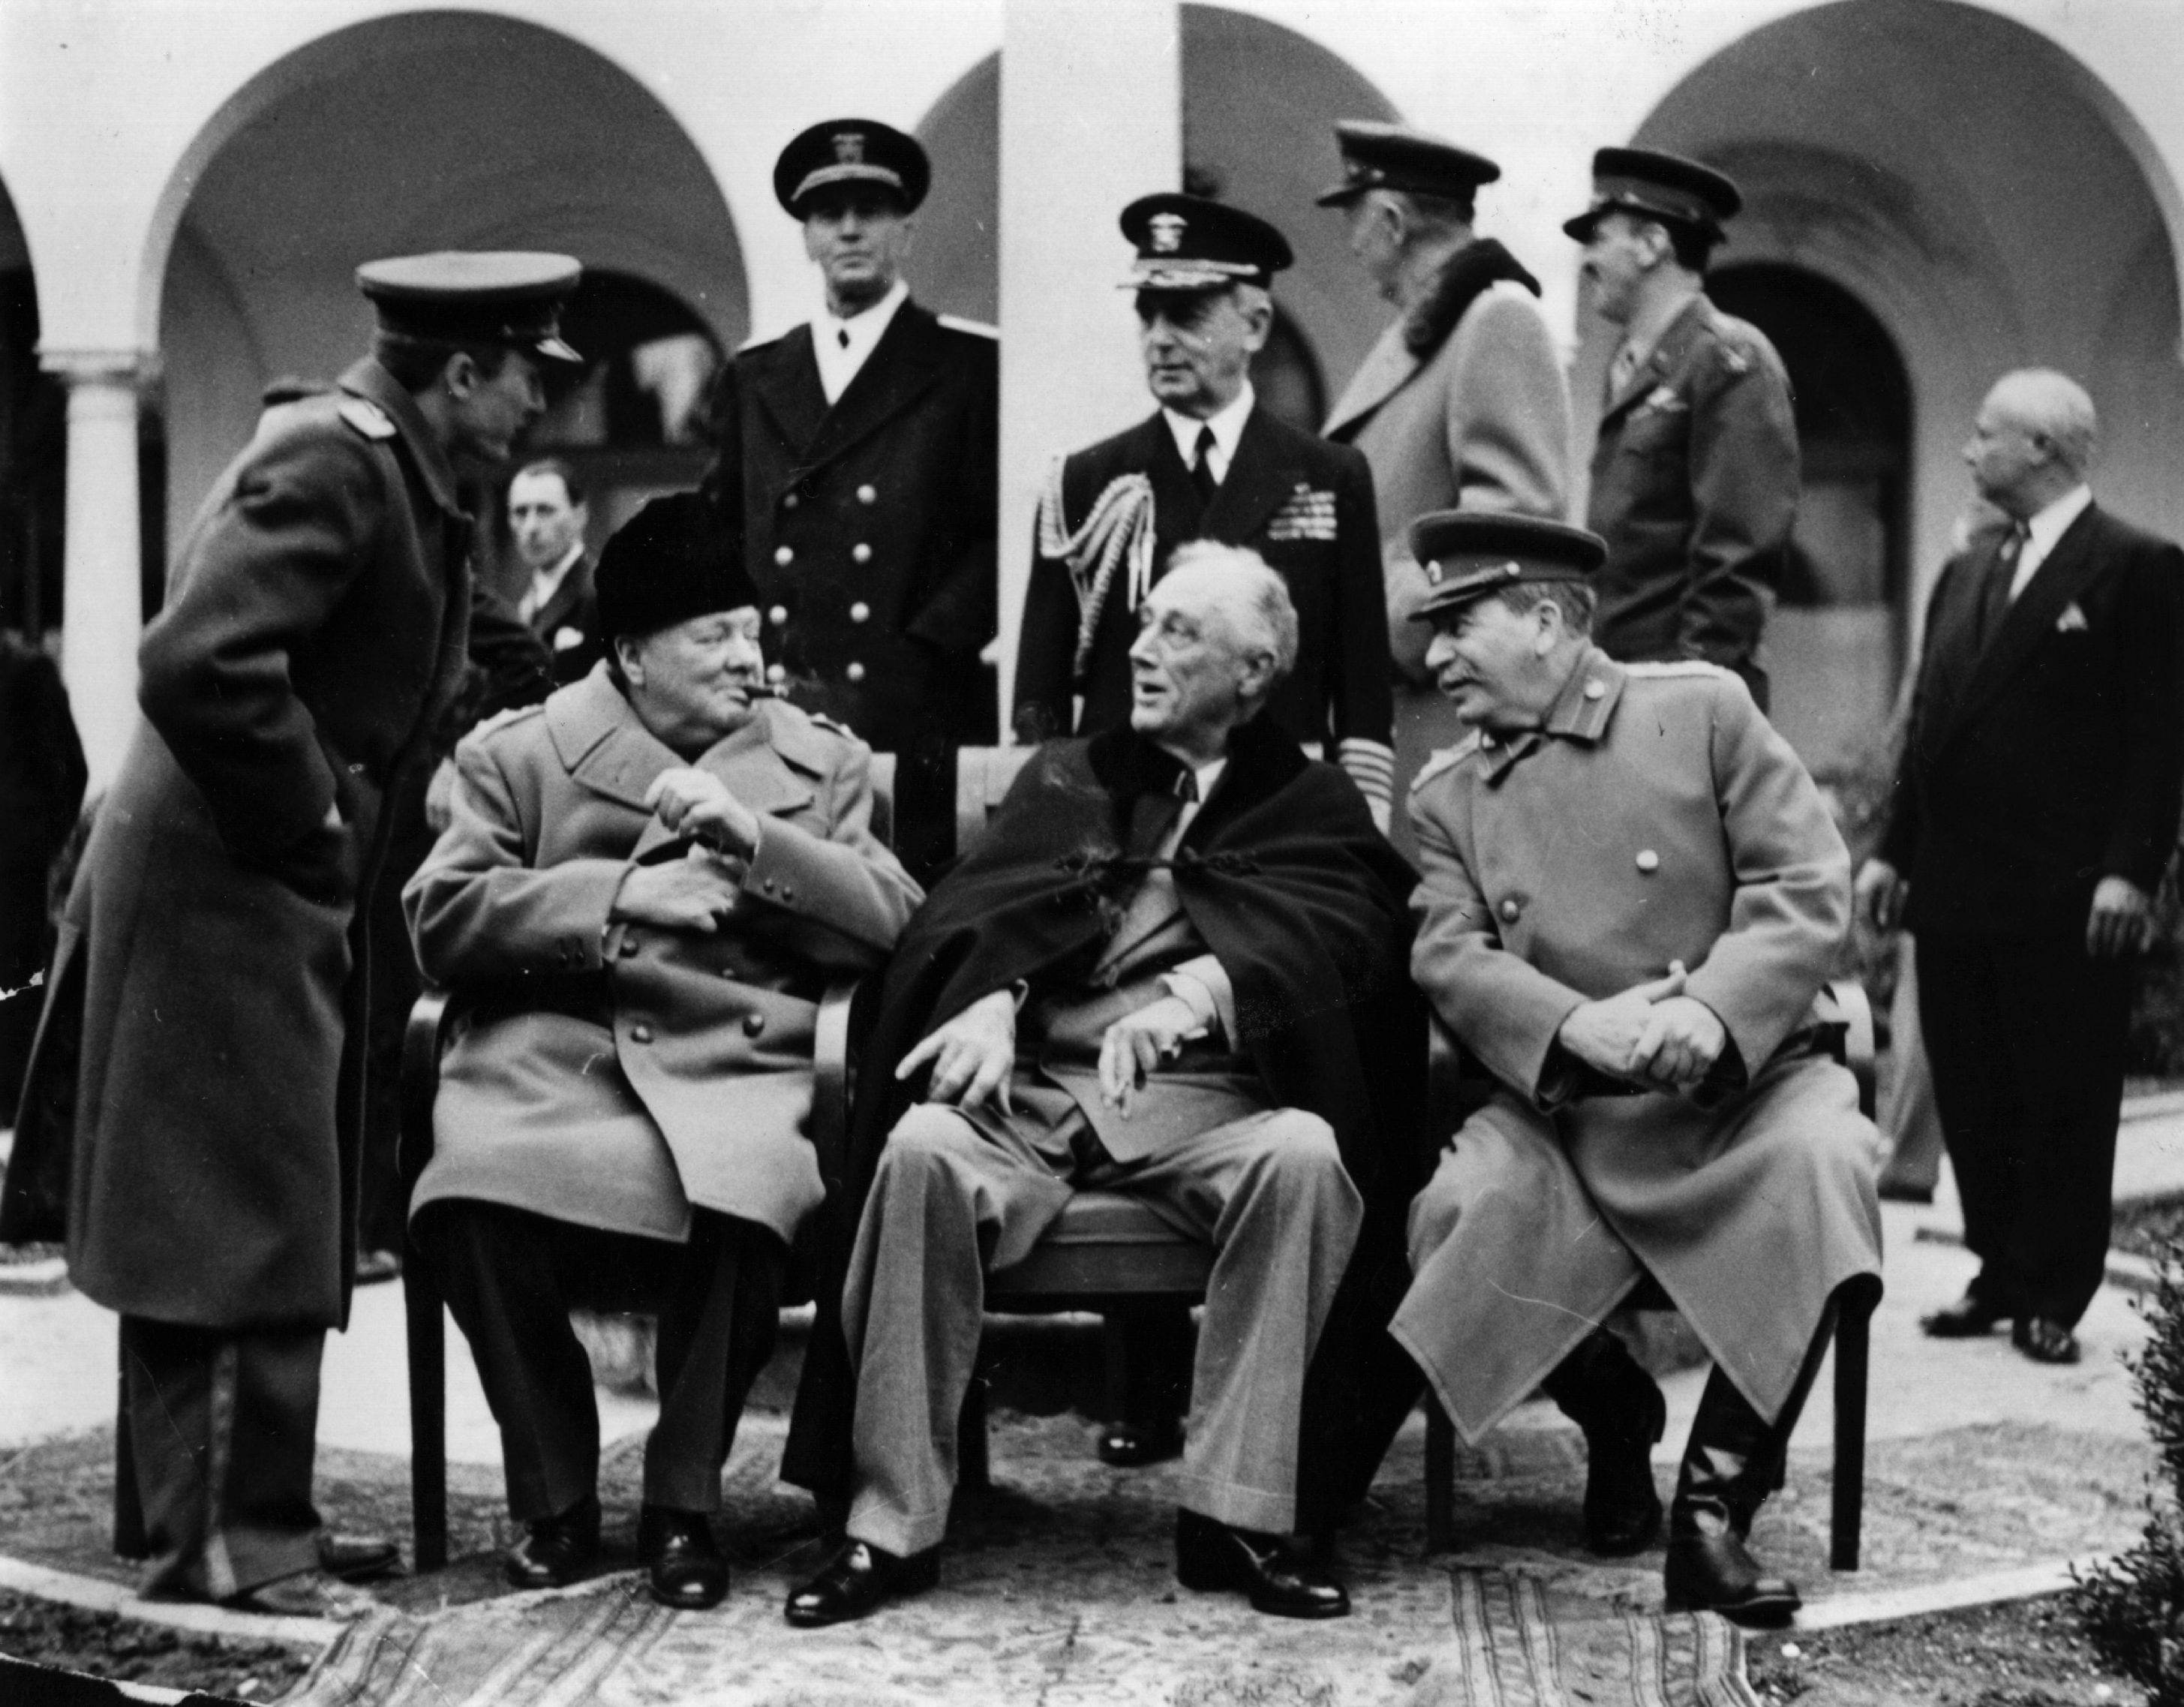 the rich history of the yalta conference The consequences of yalta the consequences of yalta the yalta conference was seen as a big positive for the citizens of european nations, and the general response to the decisions indicated optimism for the future of the continent.